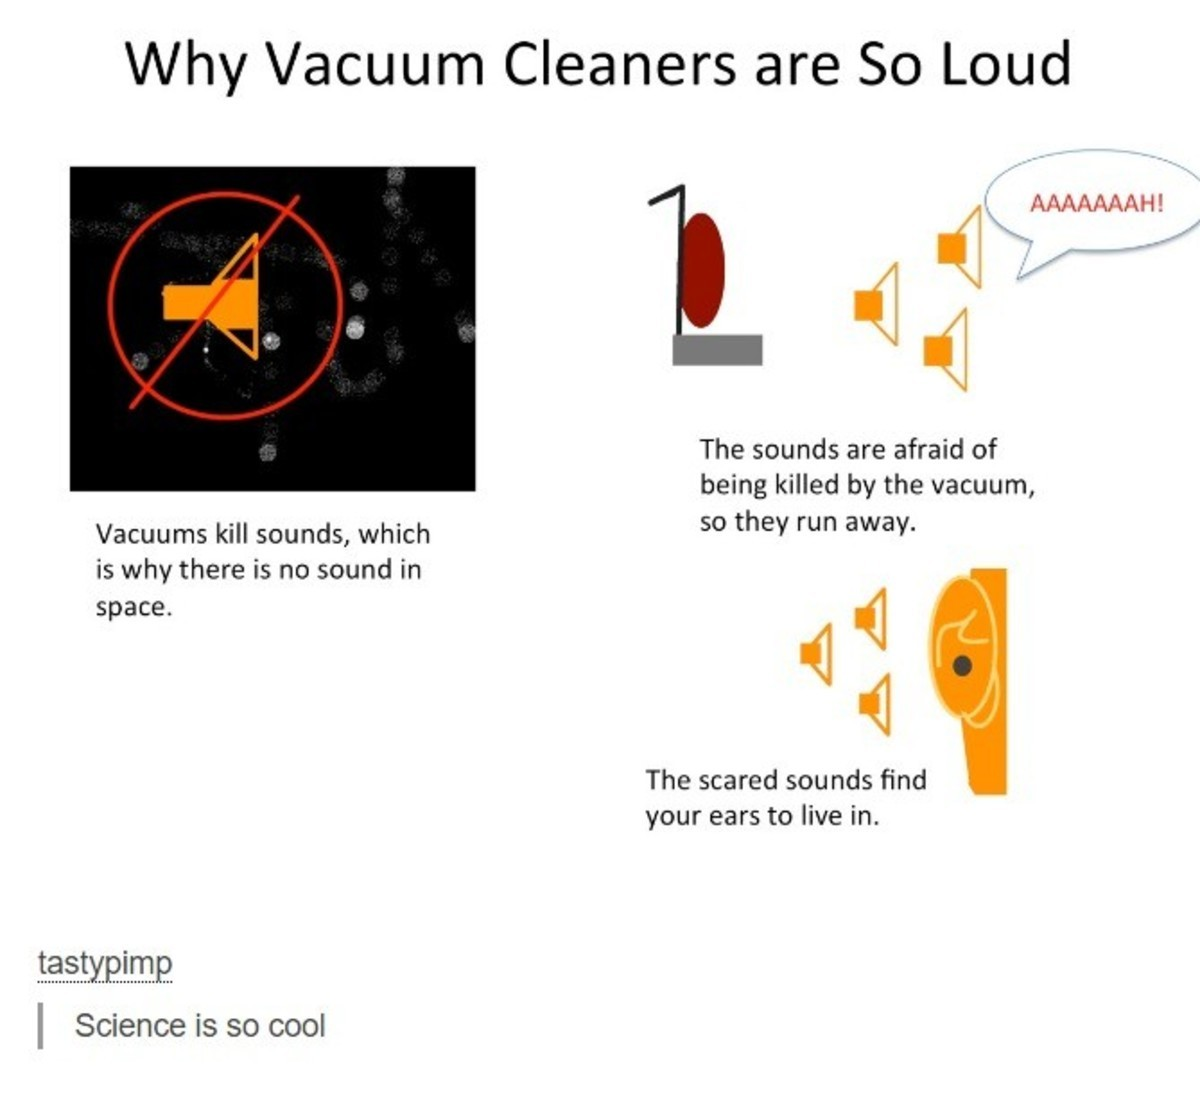 Science. . M/ 1/ cacturn Cleaners are So Loud The sounds are afraid of being killed by the vacuum, so they run away. Vacuums kill sounds, which is why there is